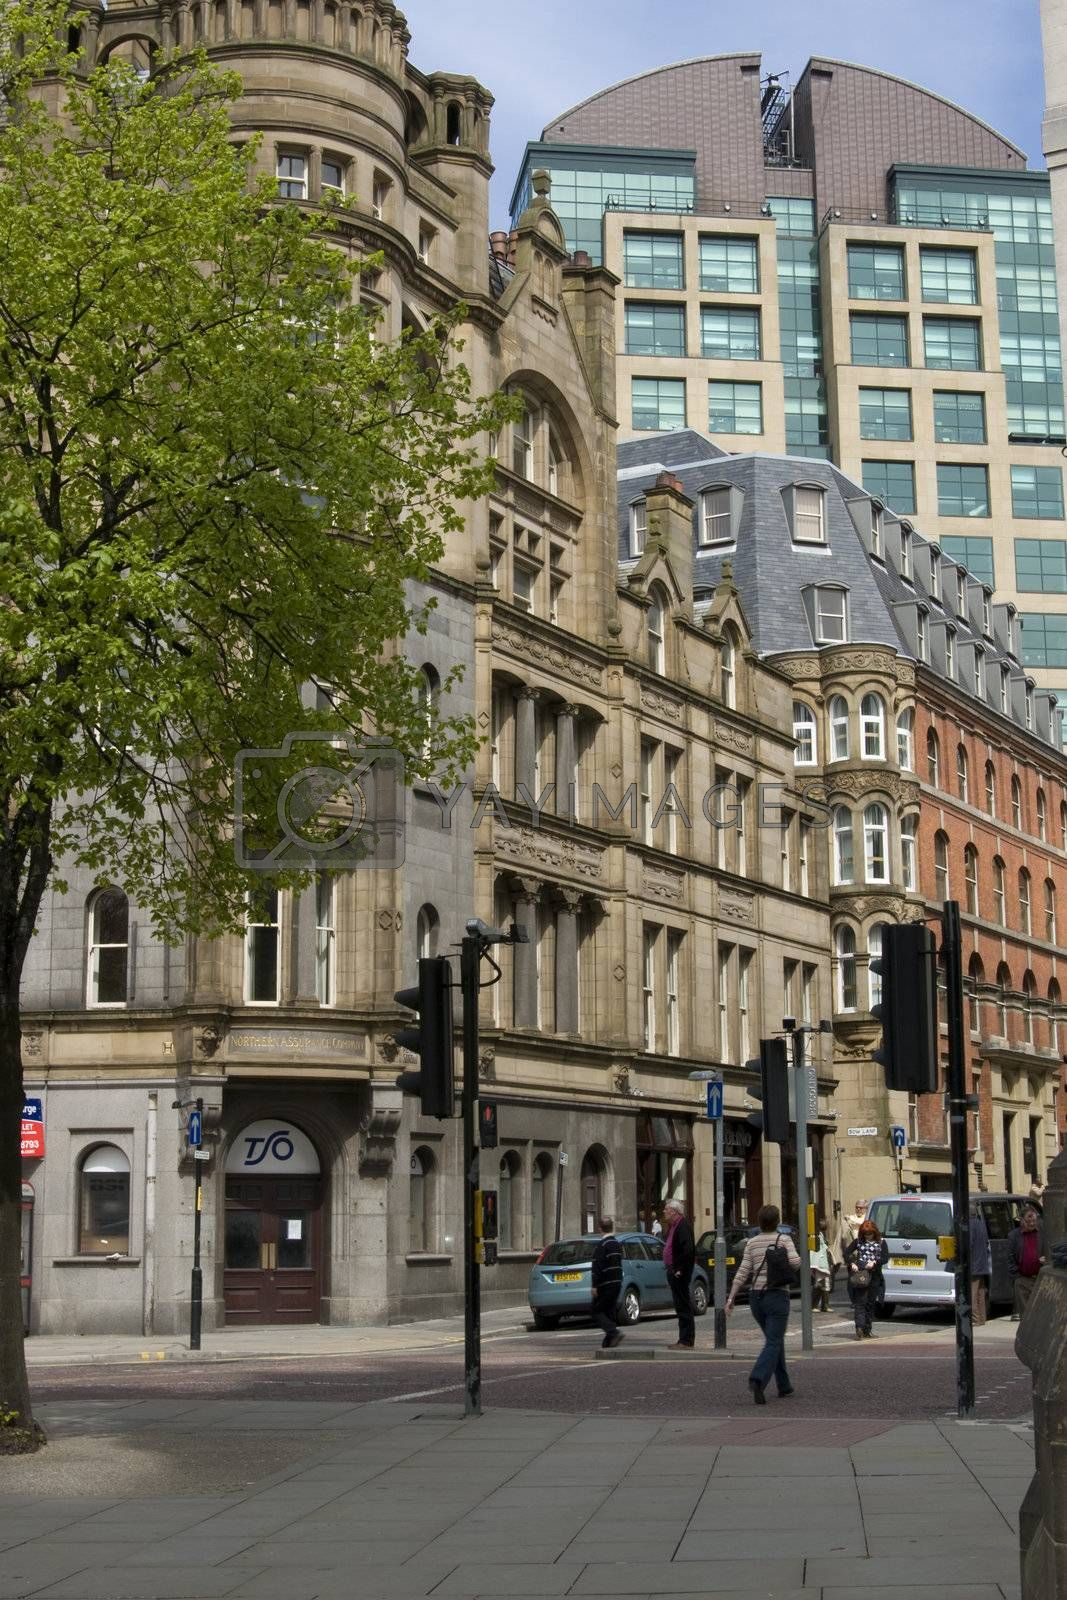 Manchester city centre by cvail73